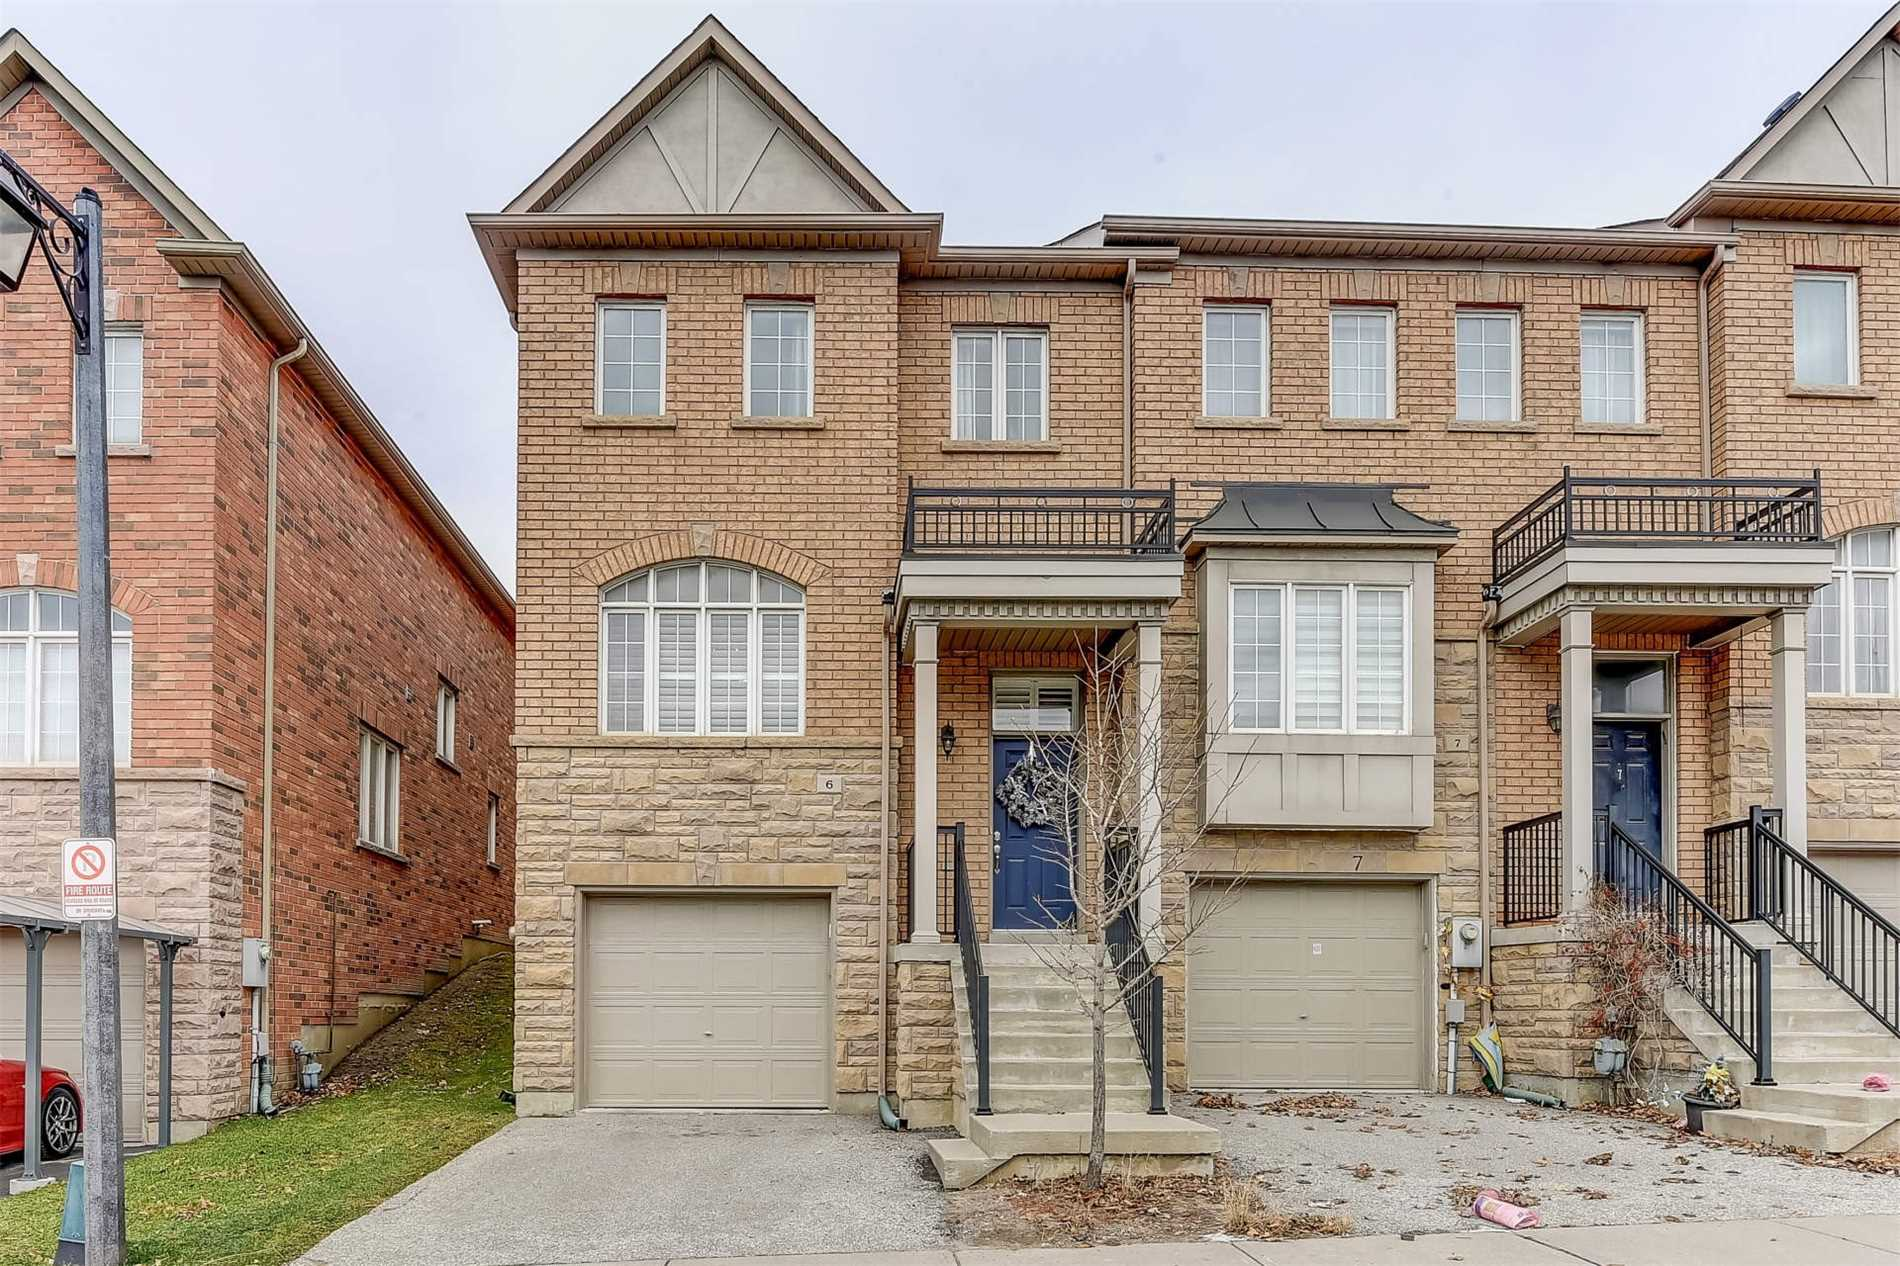 Buliding: 700 Summeridge Drive, Vaughan, ON